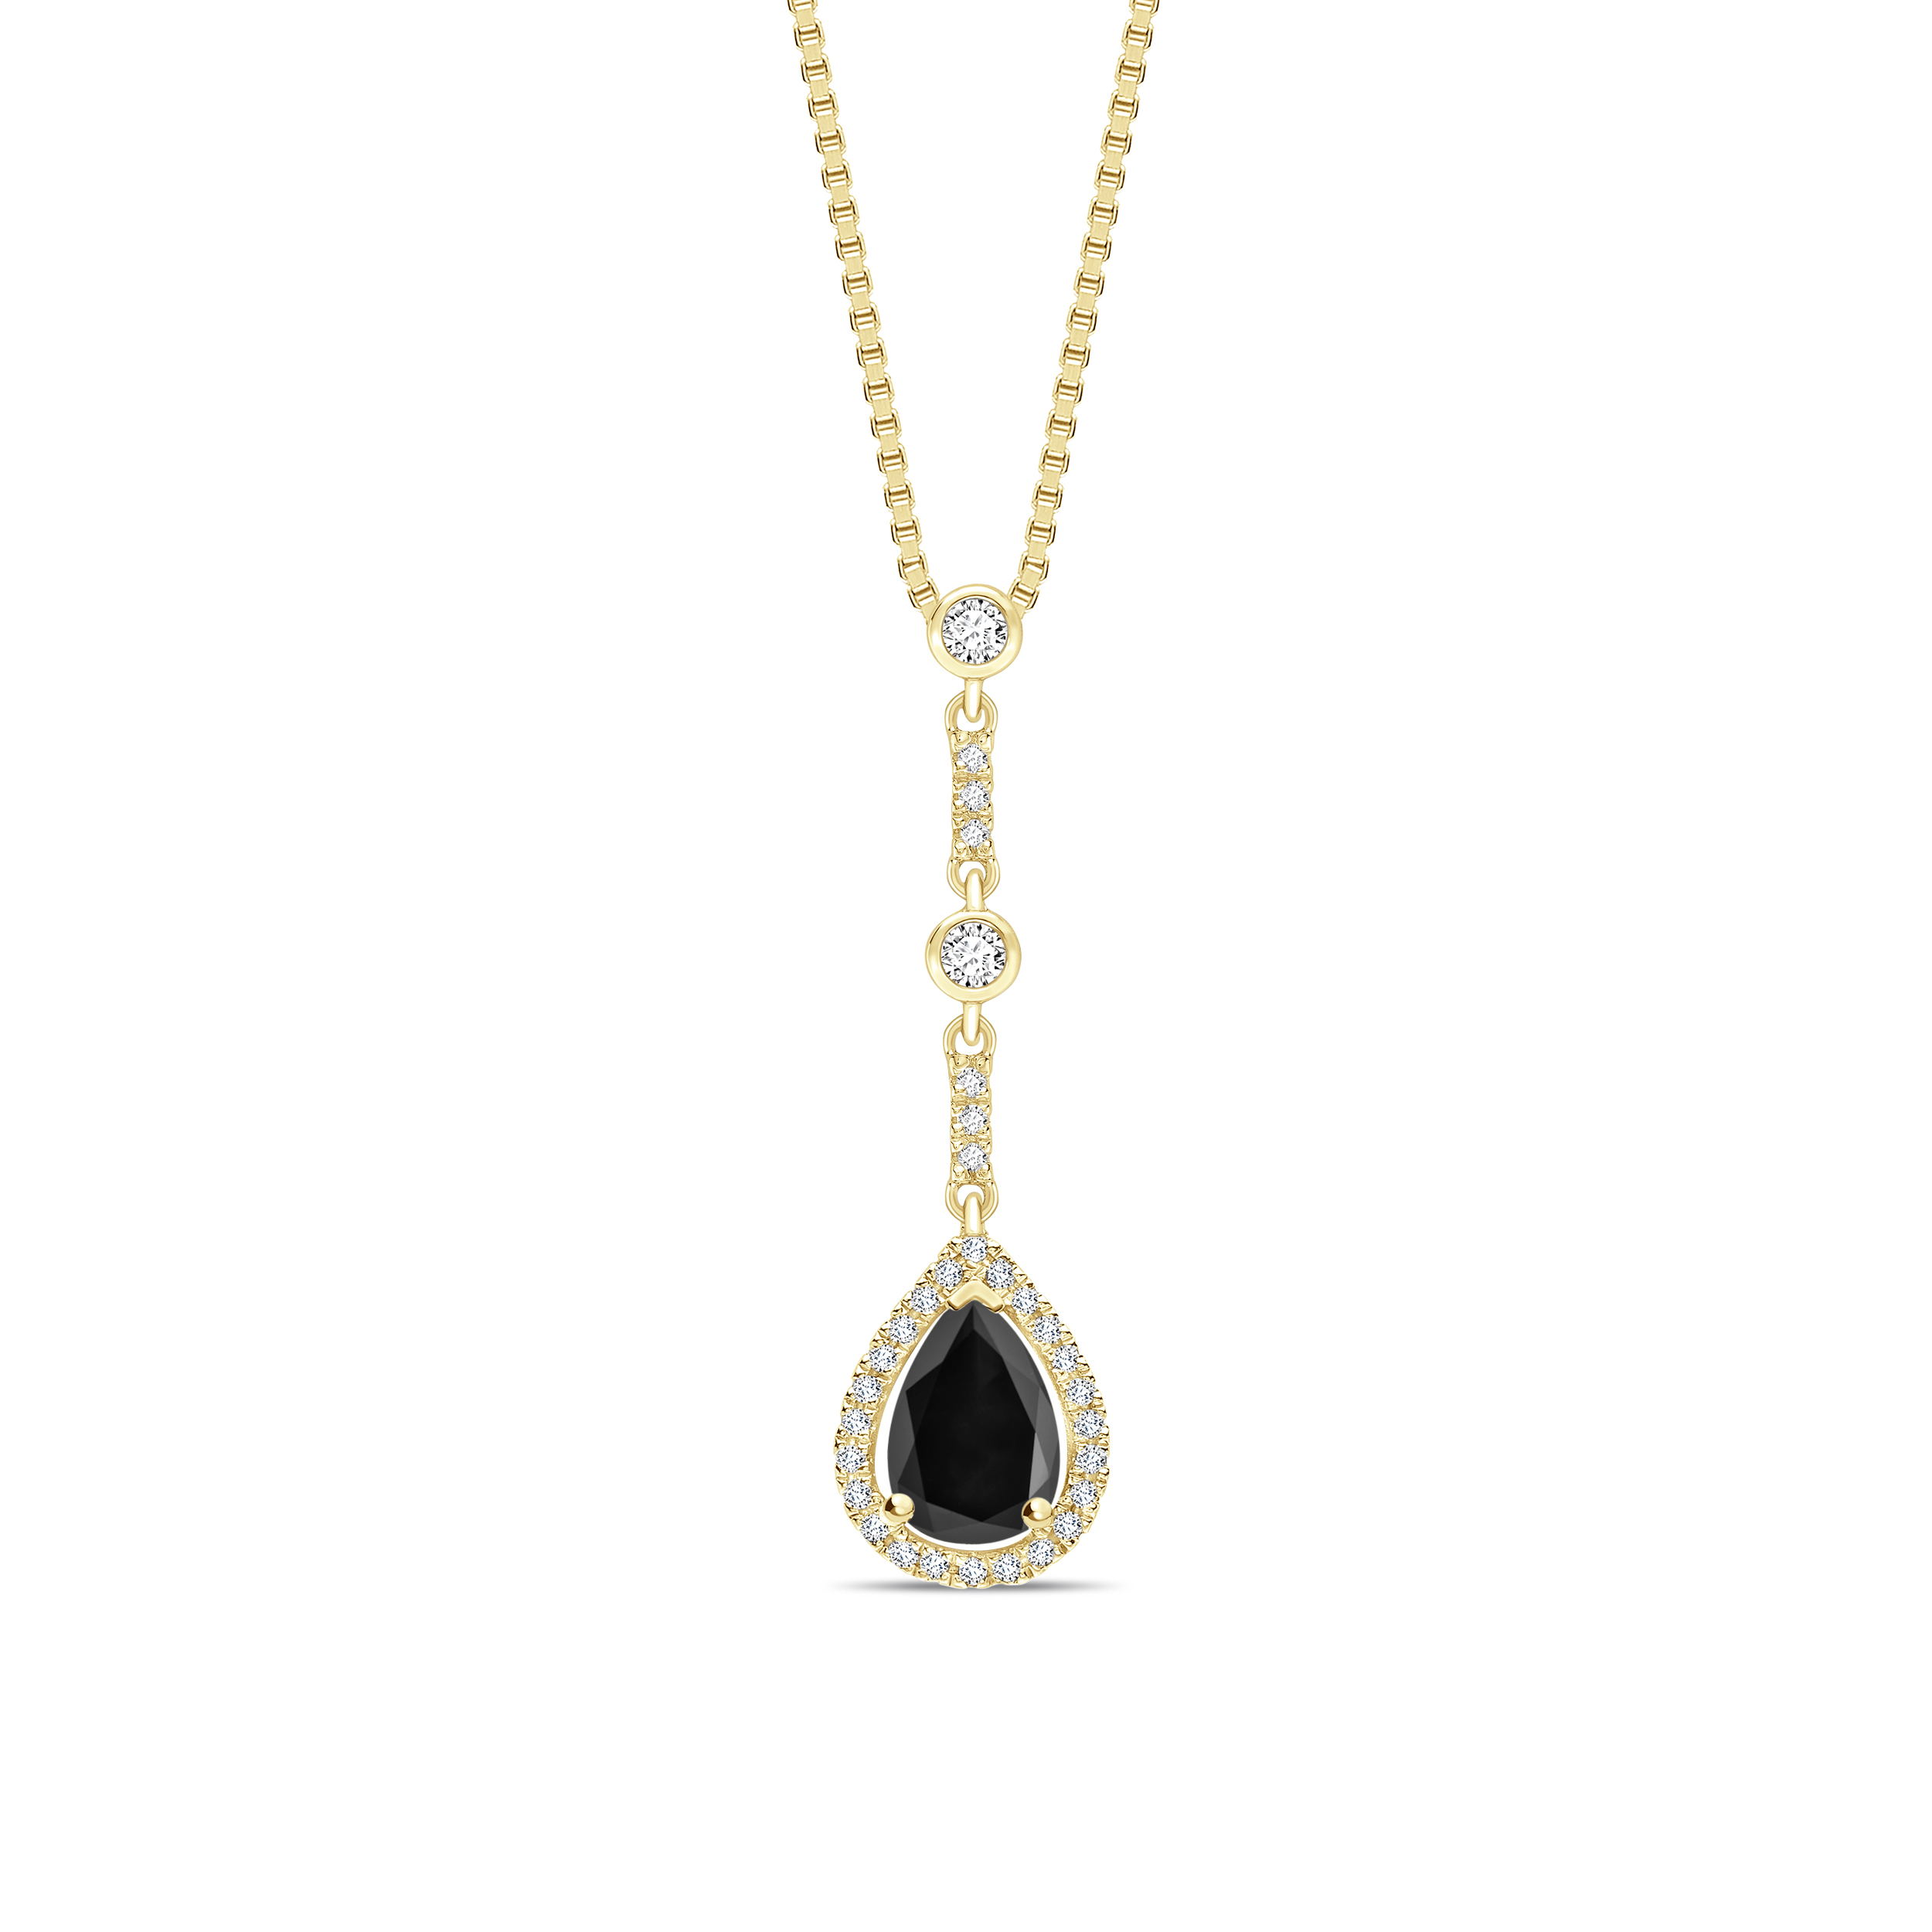 Designer Black Diamond Solitaire Pendants Necklace in Pear Cut